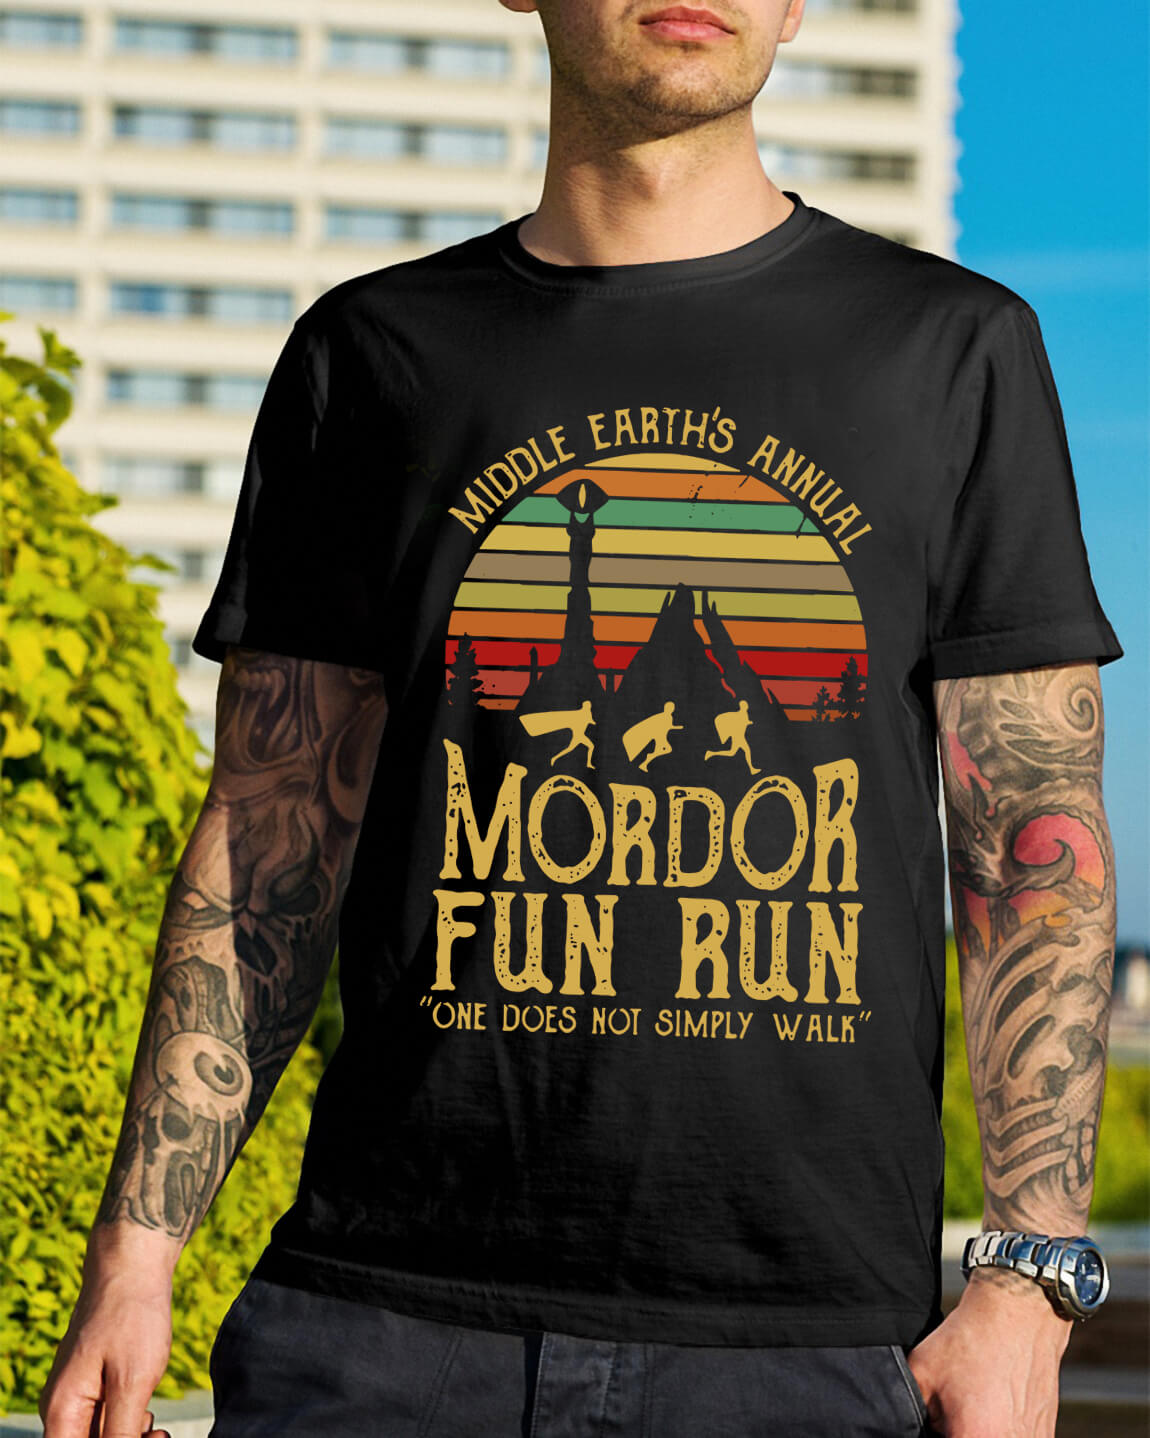 9fece8be0 Sunset Middle Earth's annual Mordor fun run one does not simply shirt